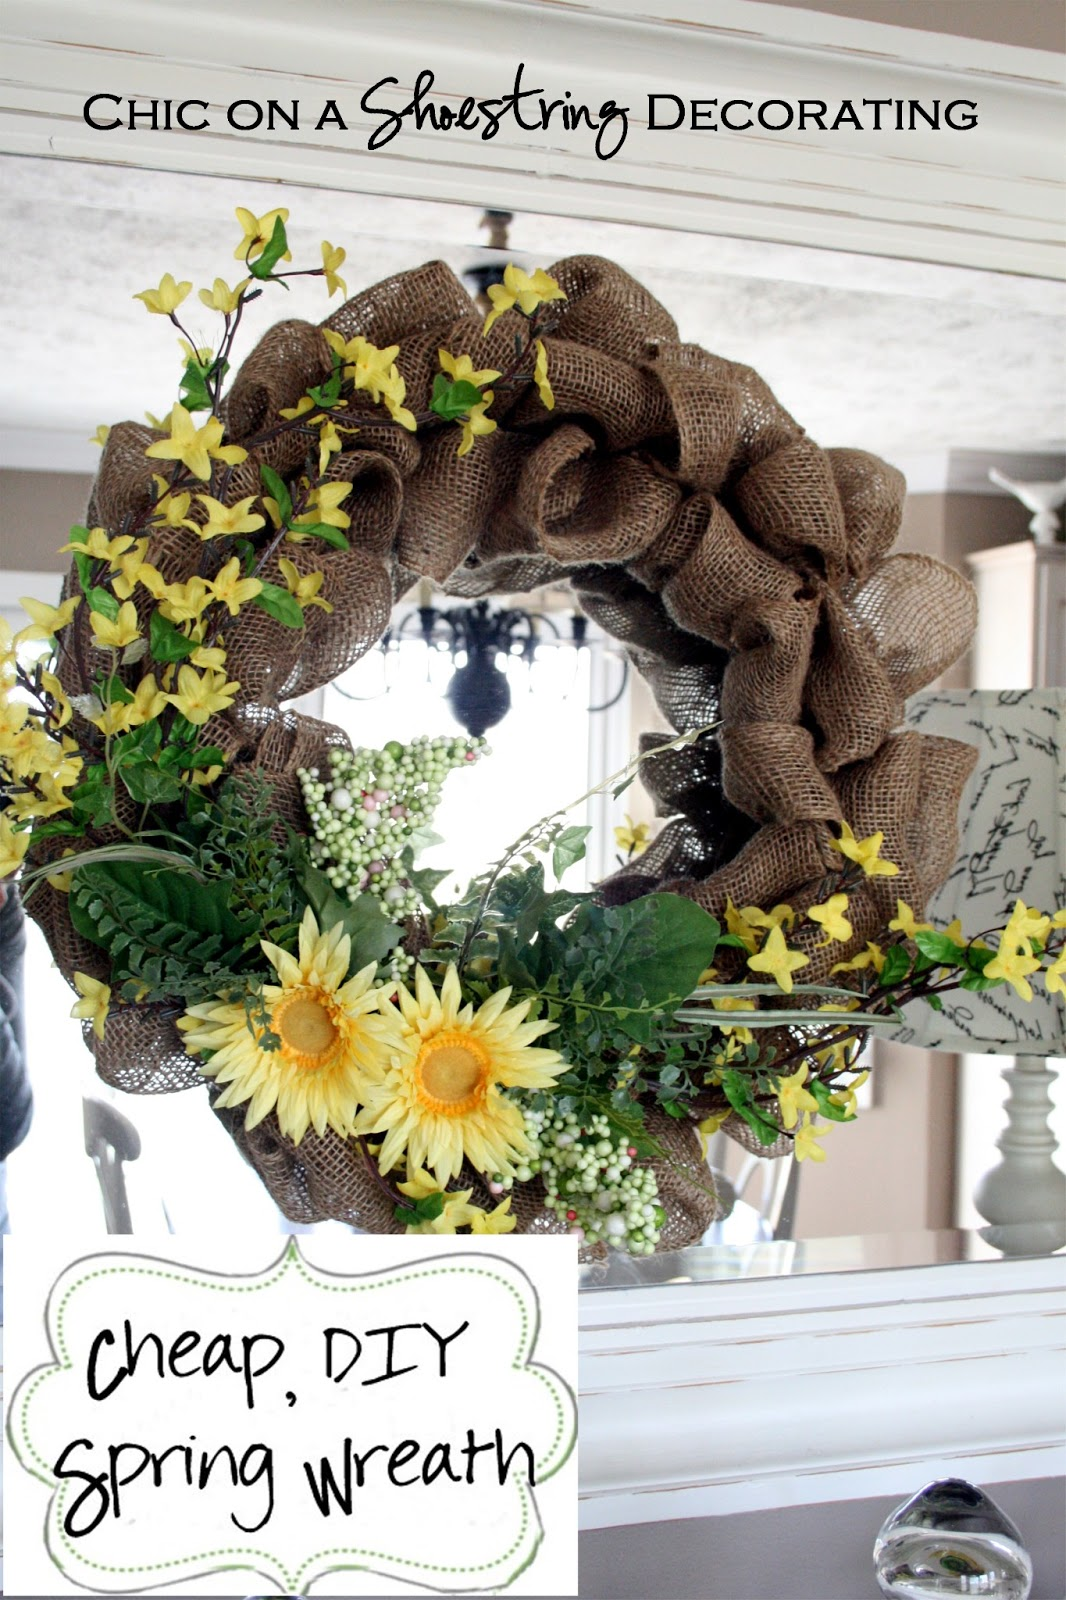 Chic On A Shoestring Decorating Cheap Diy Spring Wreath